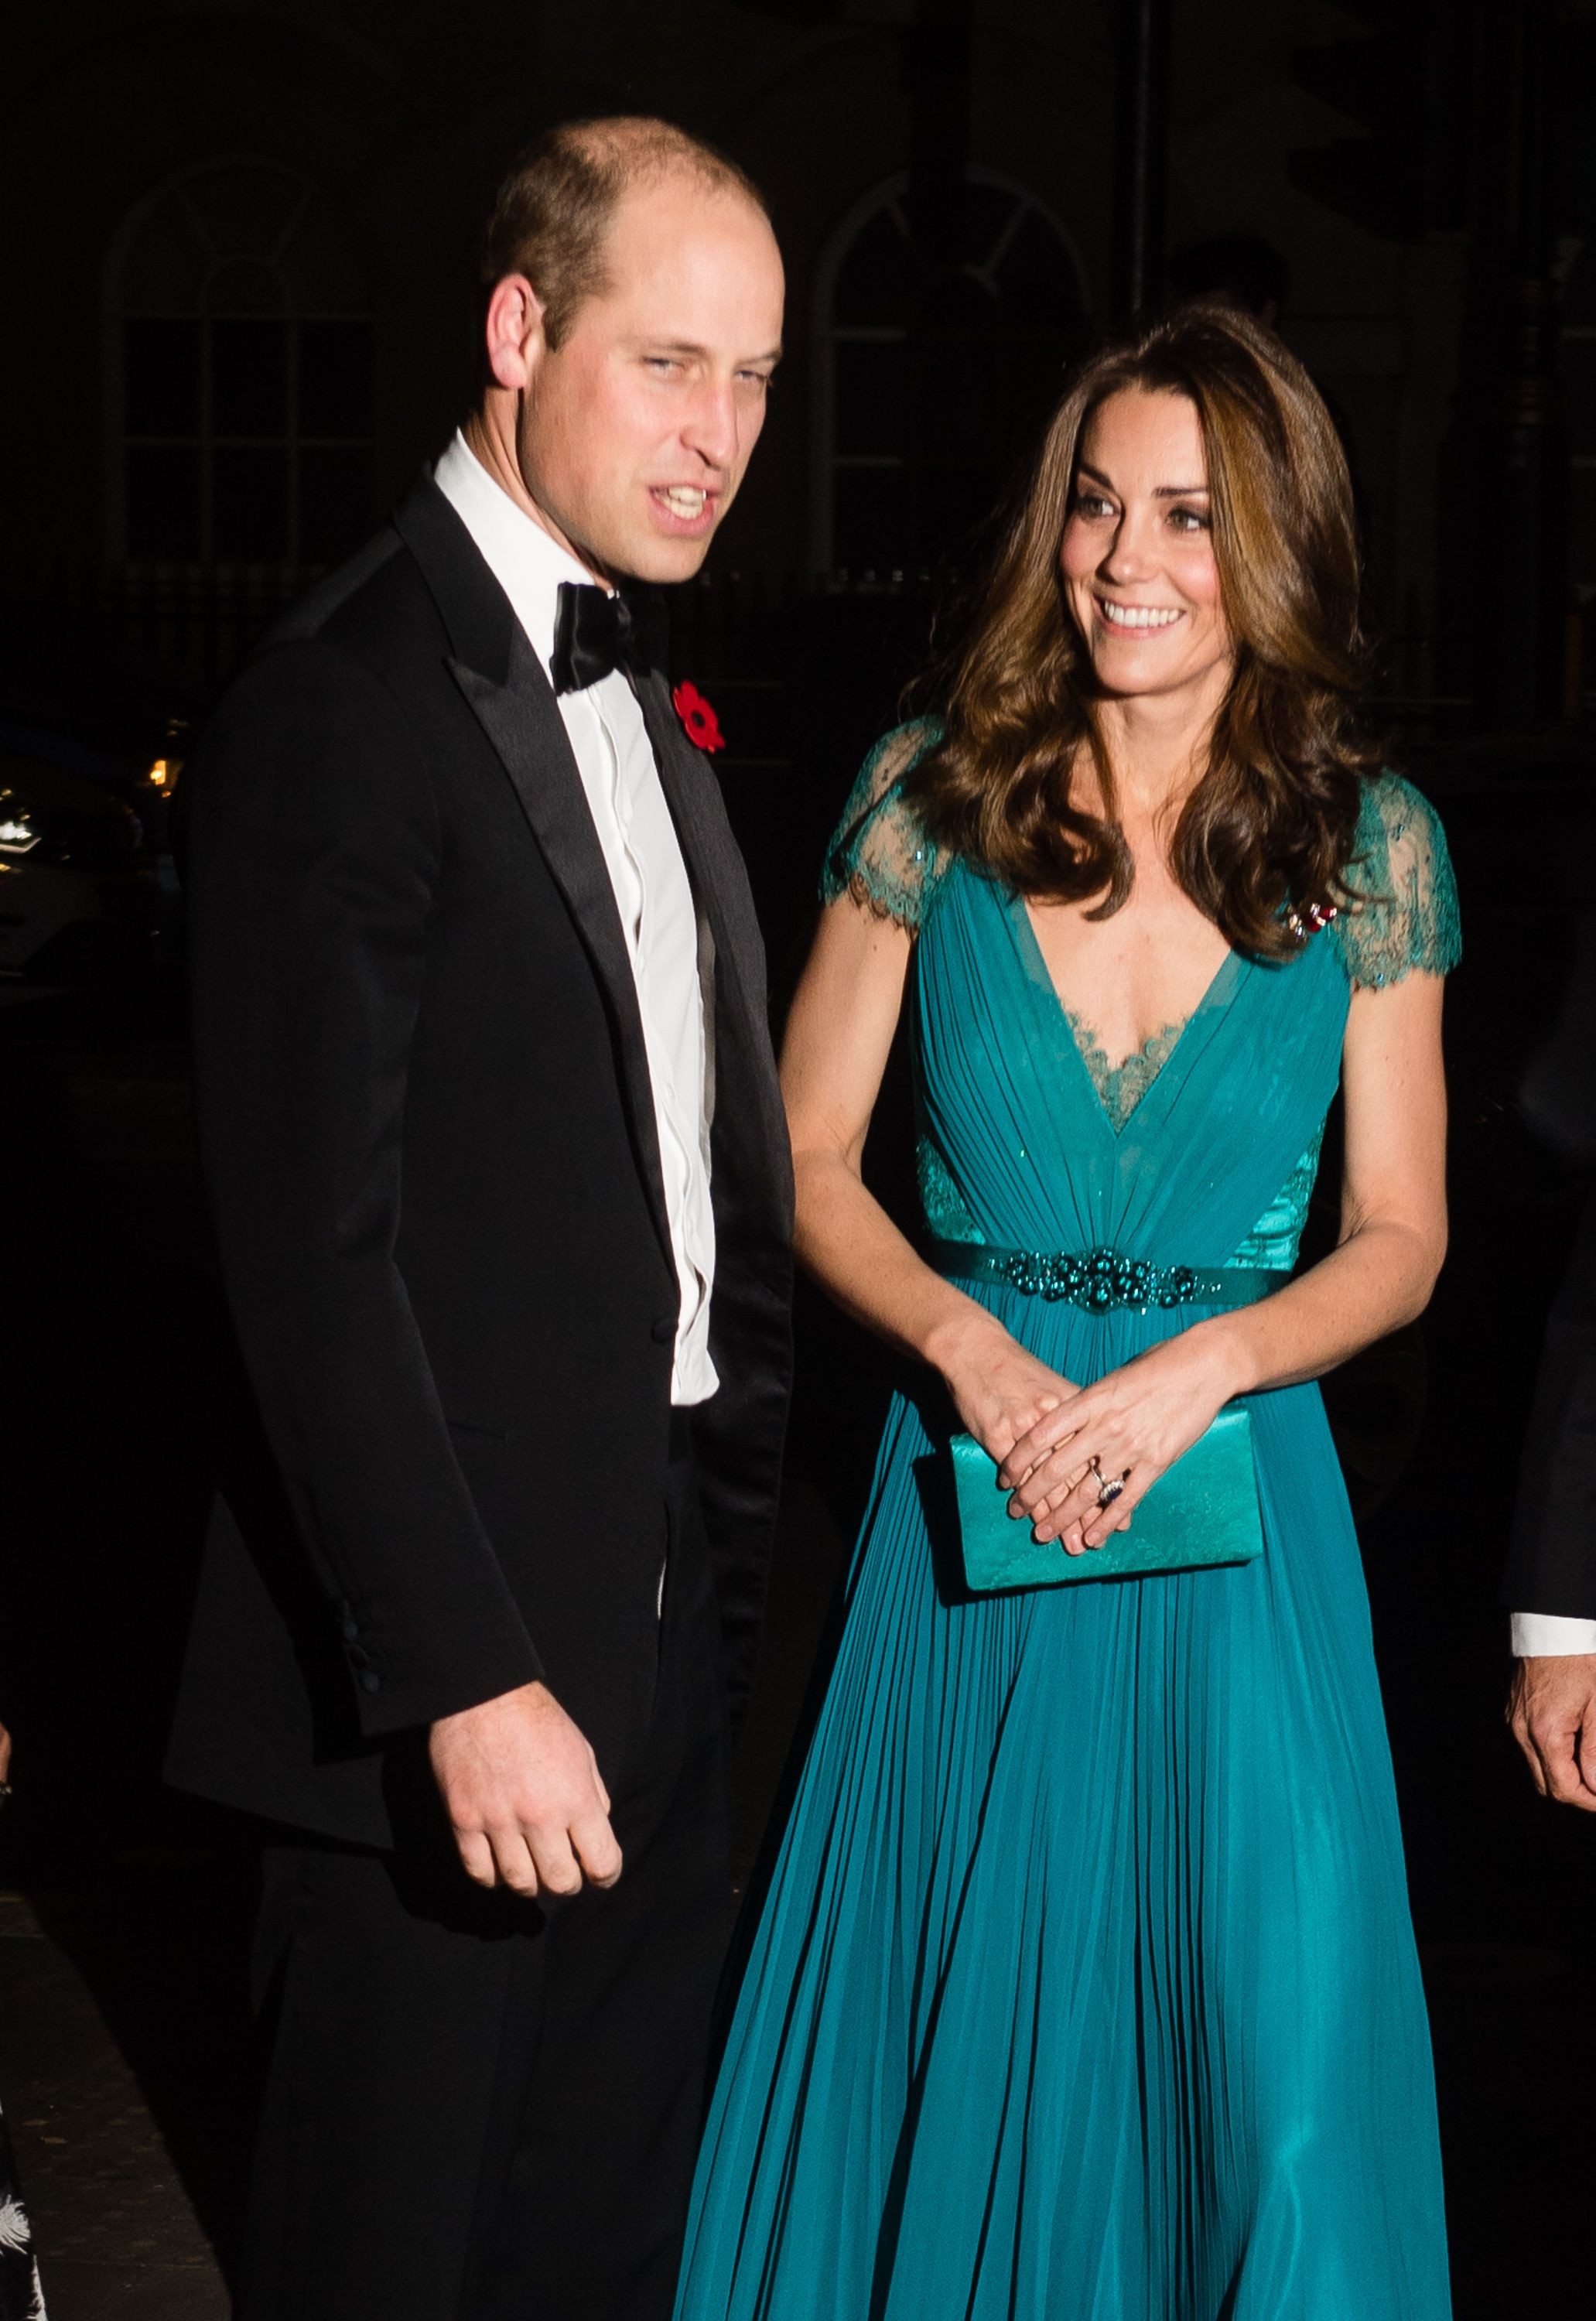 d6735ac046d Kate Middleton Rewore Jenny Packham Dress at 2018 Tusk Conservation Awards  With Prince William